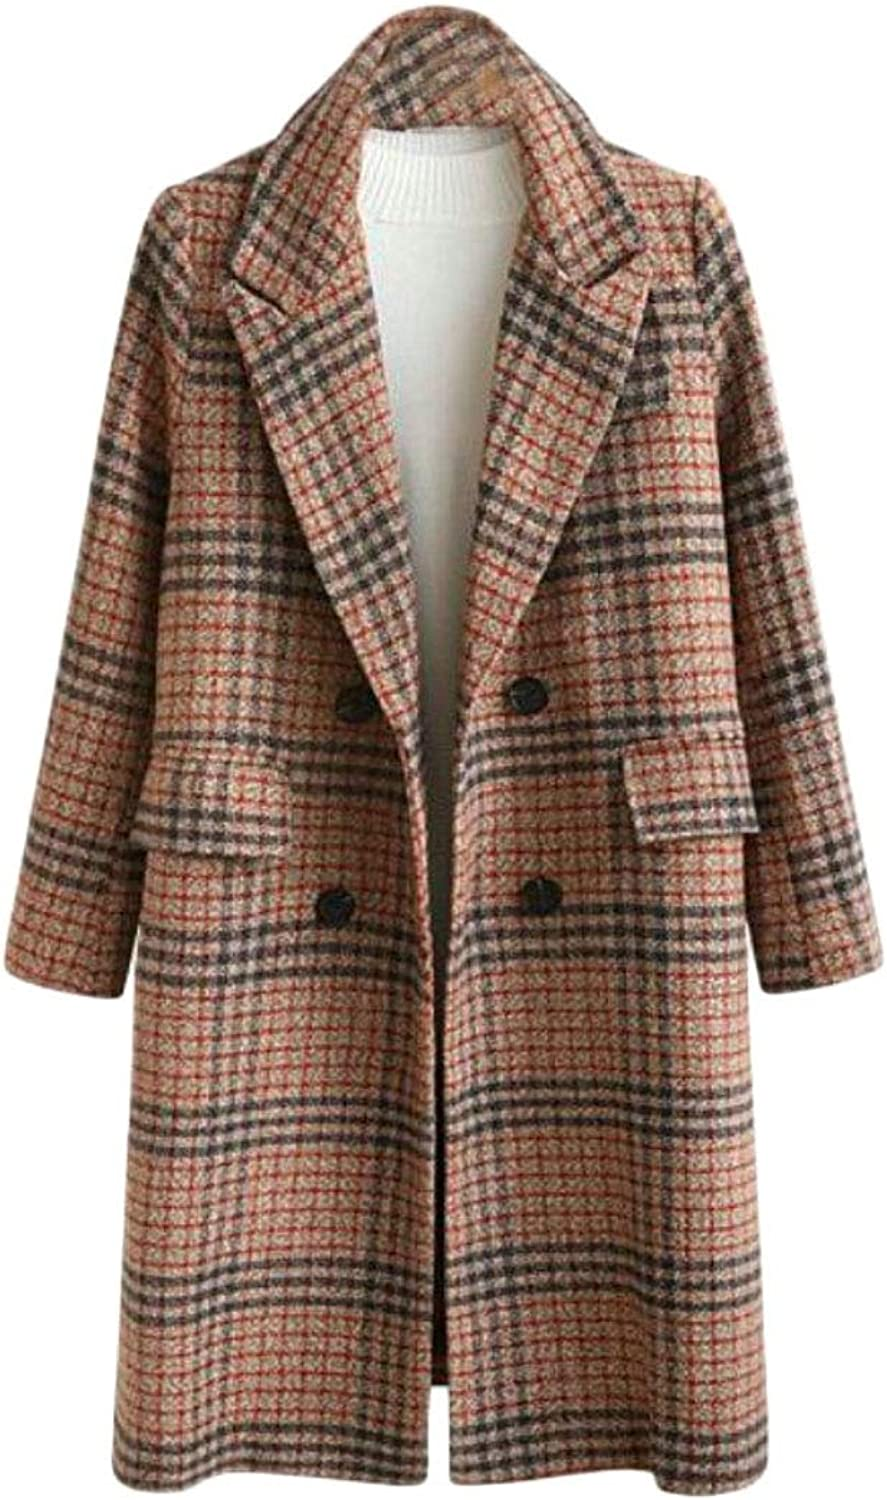 Gocgt Women's DoubleBreasted Trench Coat Plaid Plus Size Wool Blend Overcoat